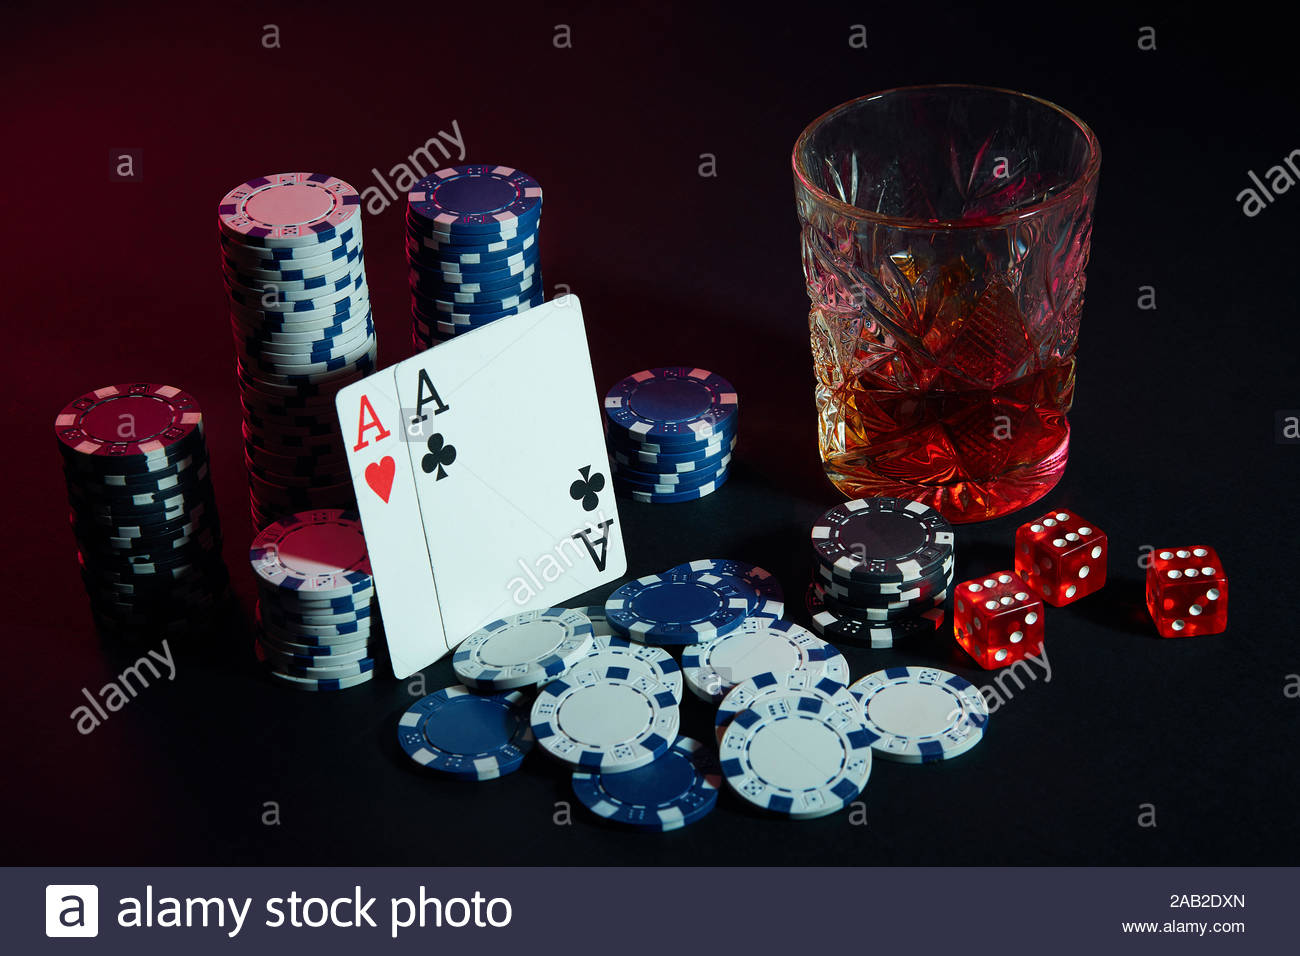 Casino On A Budget Ten Ideas From The Good Depression